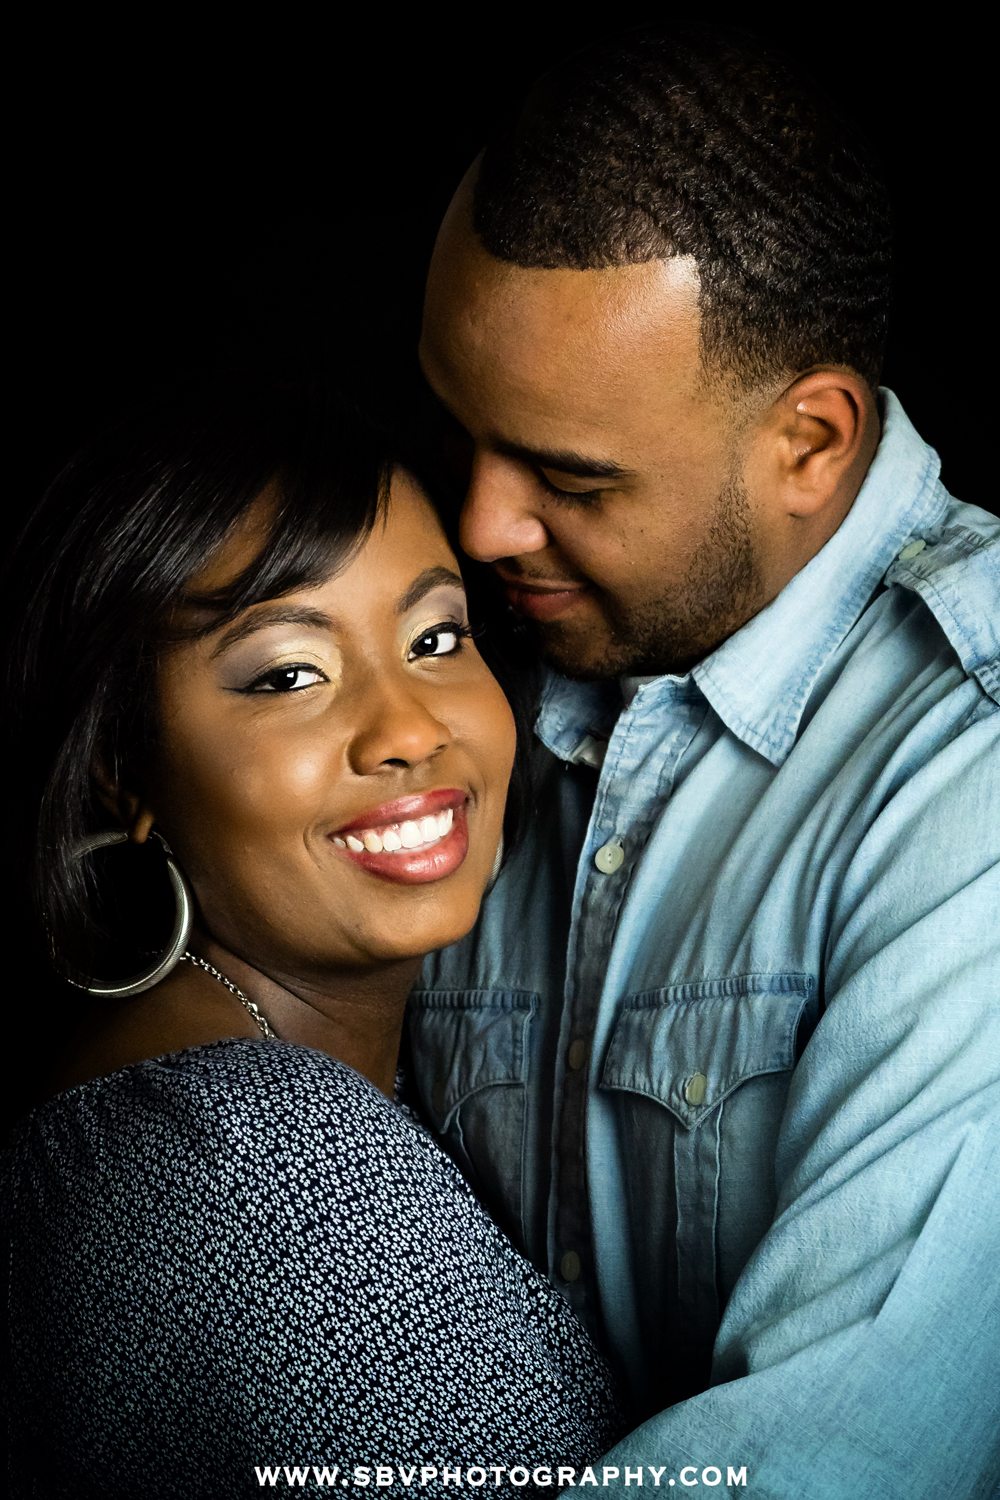 A couple in love embraces during their studio portrait session.